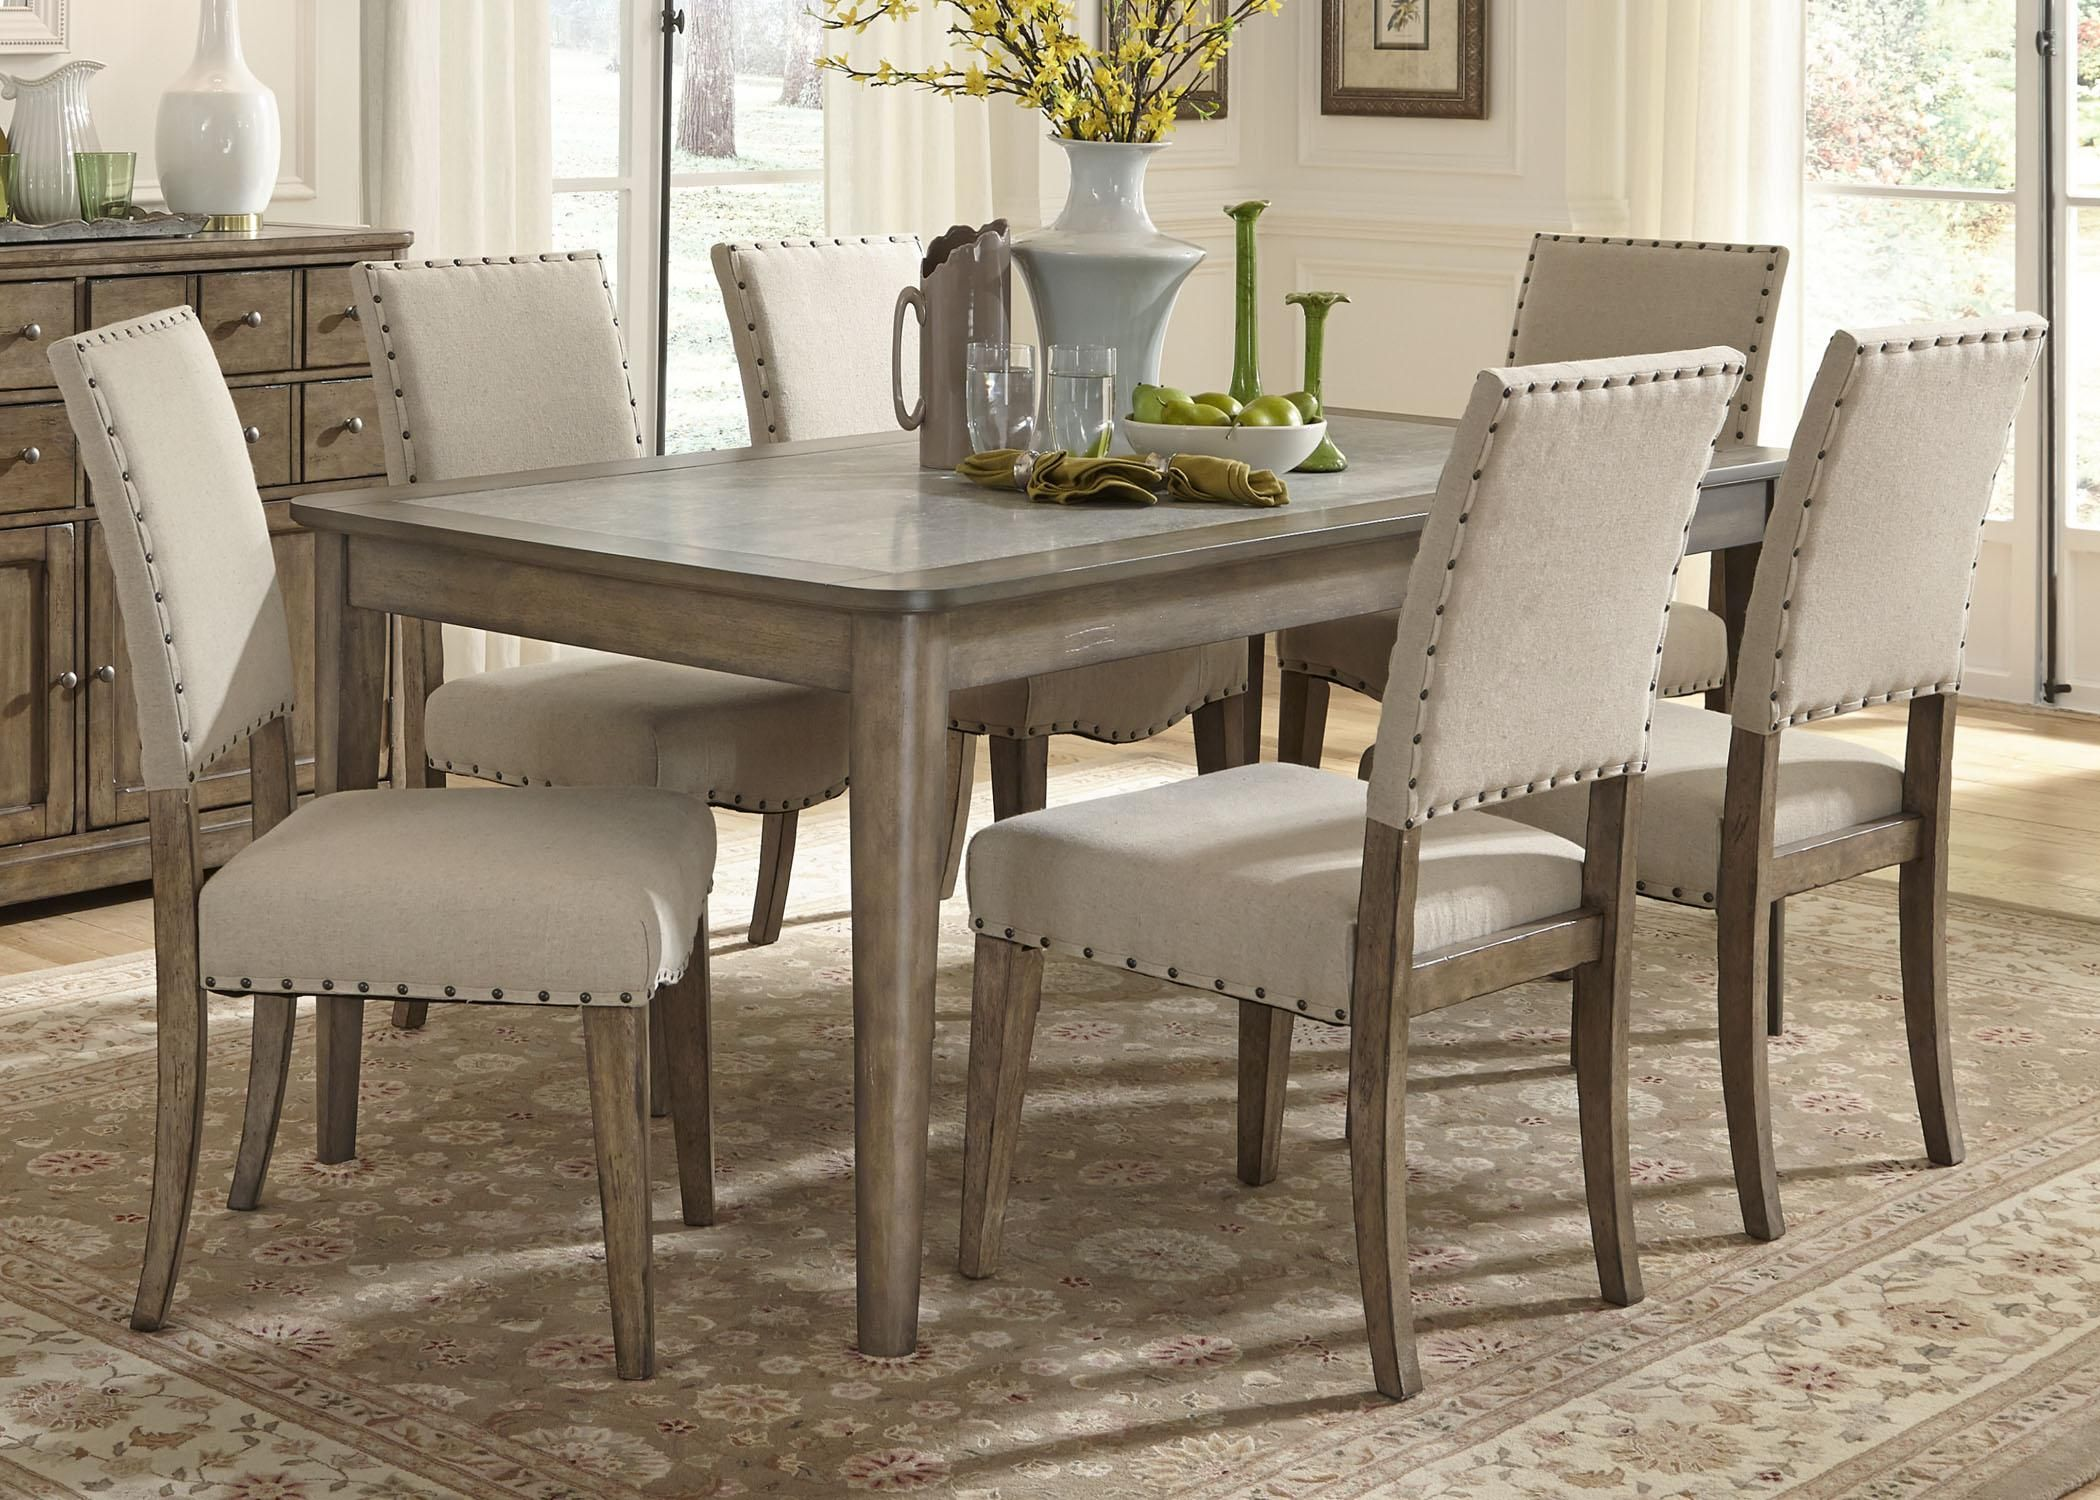 Beautifull Breakfast Table Set In 2020 Dining Room Sets Modern Dining Room Dining Table Chairs